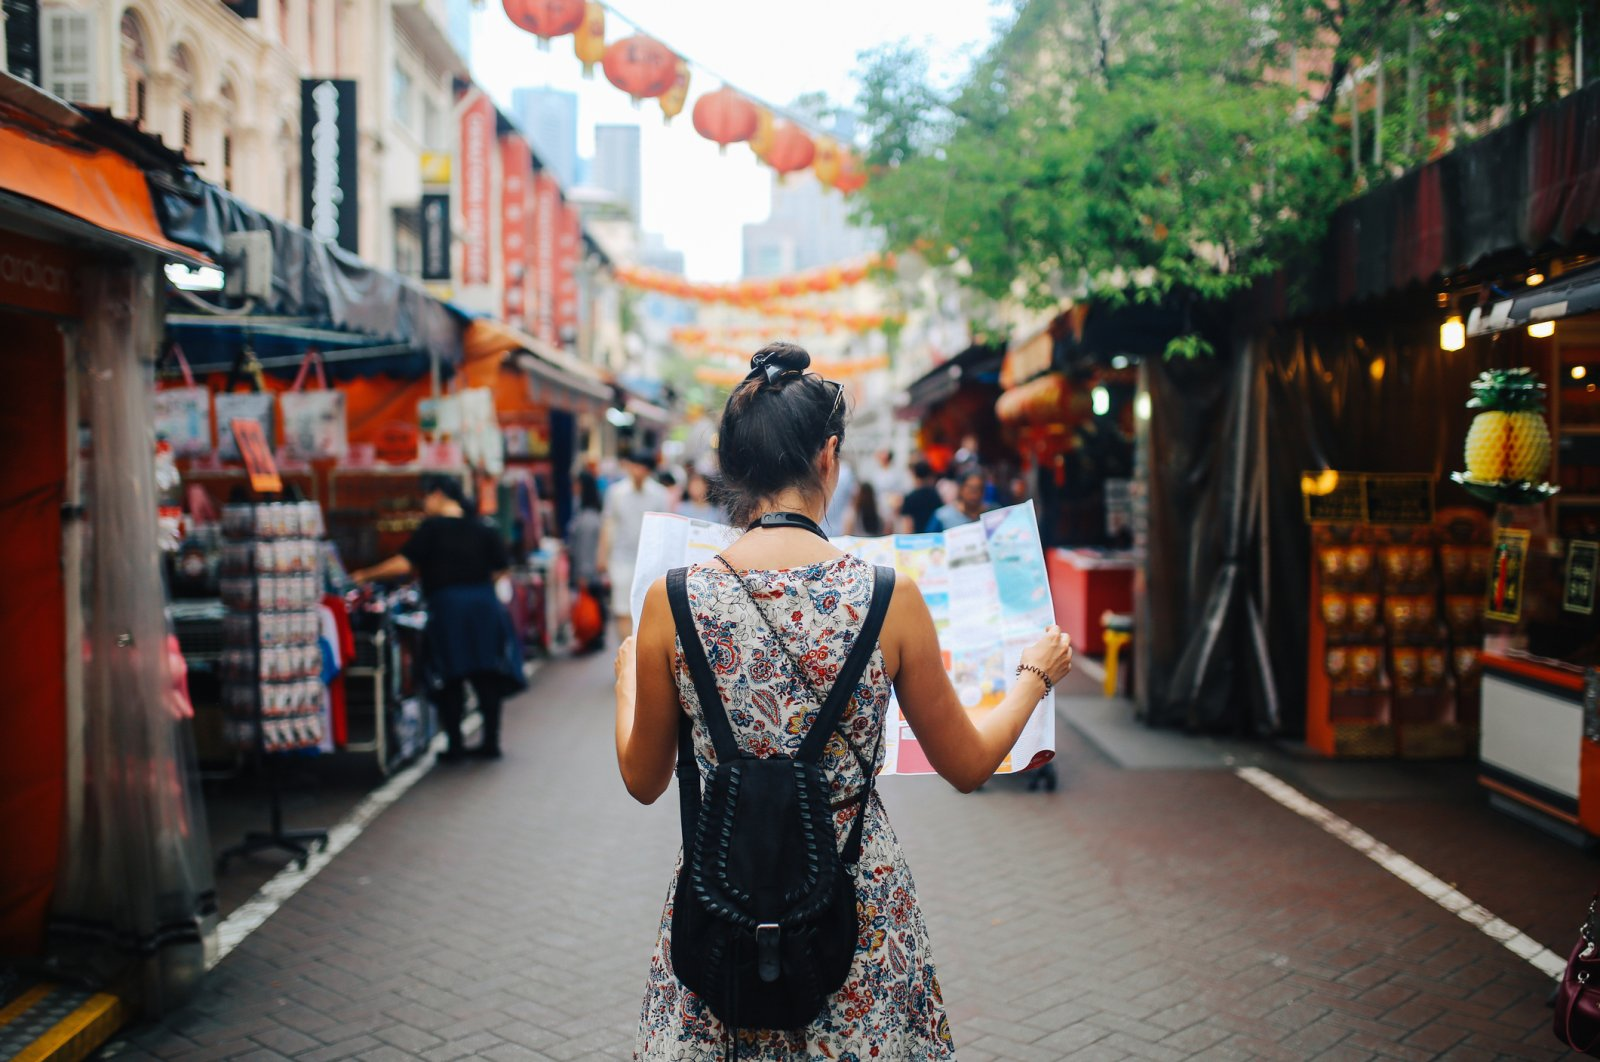 Contrary to popular belief, research shows most women prefer traveling alone. (iStock Photo)